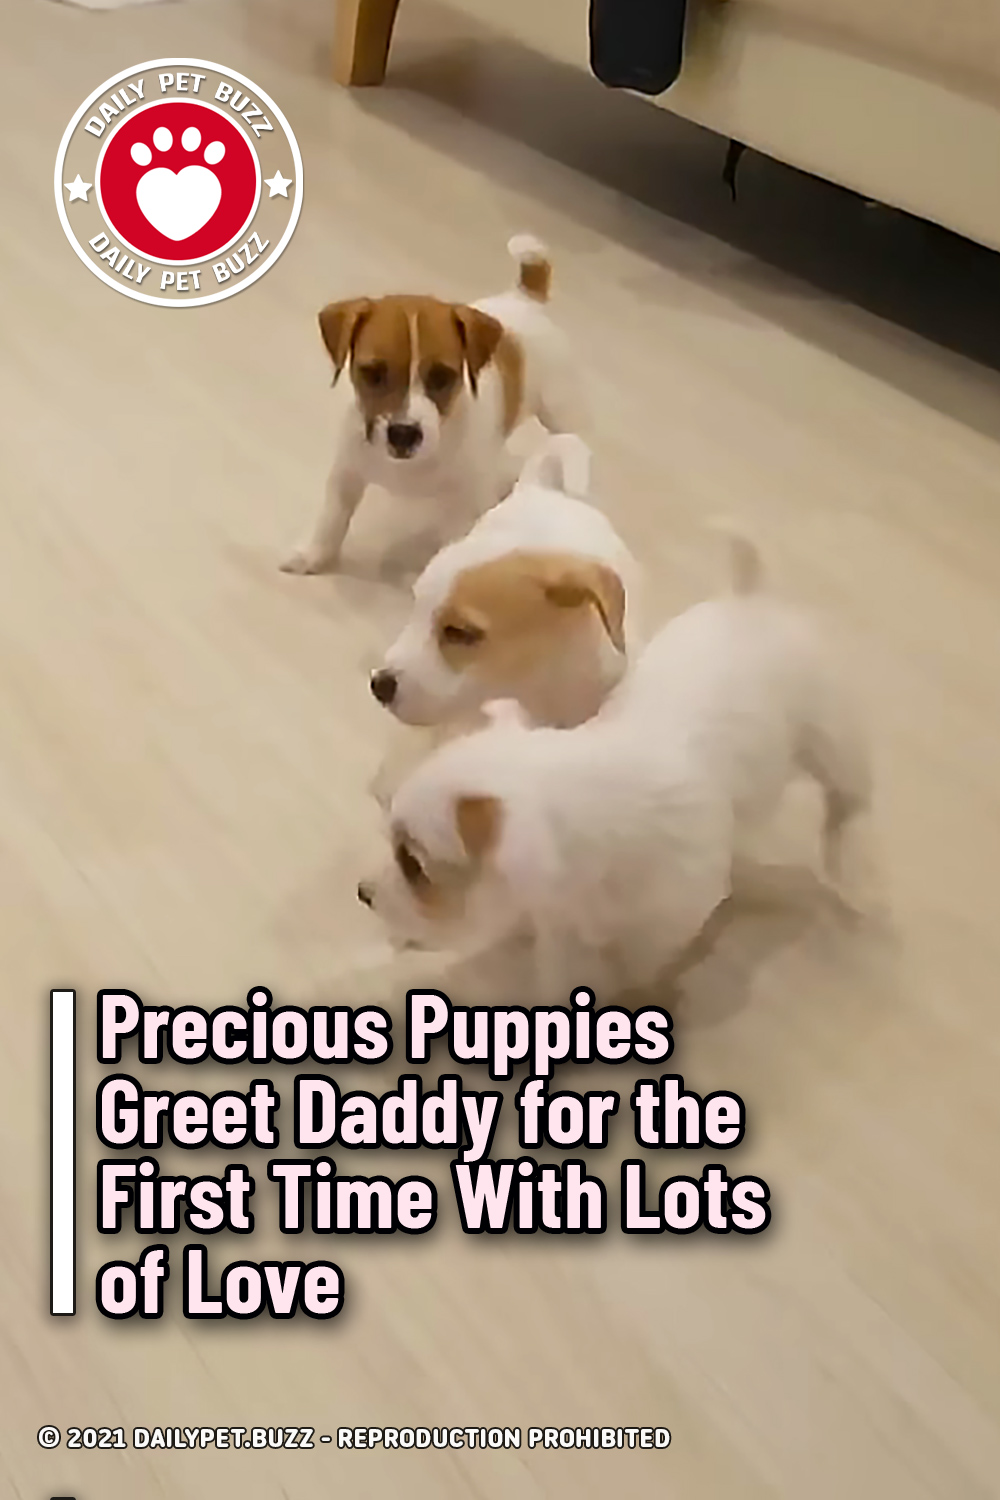 Precious Puppies Greet Daddy for the First Time With Lots of Love